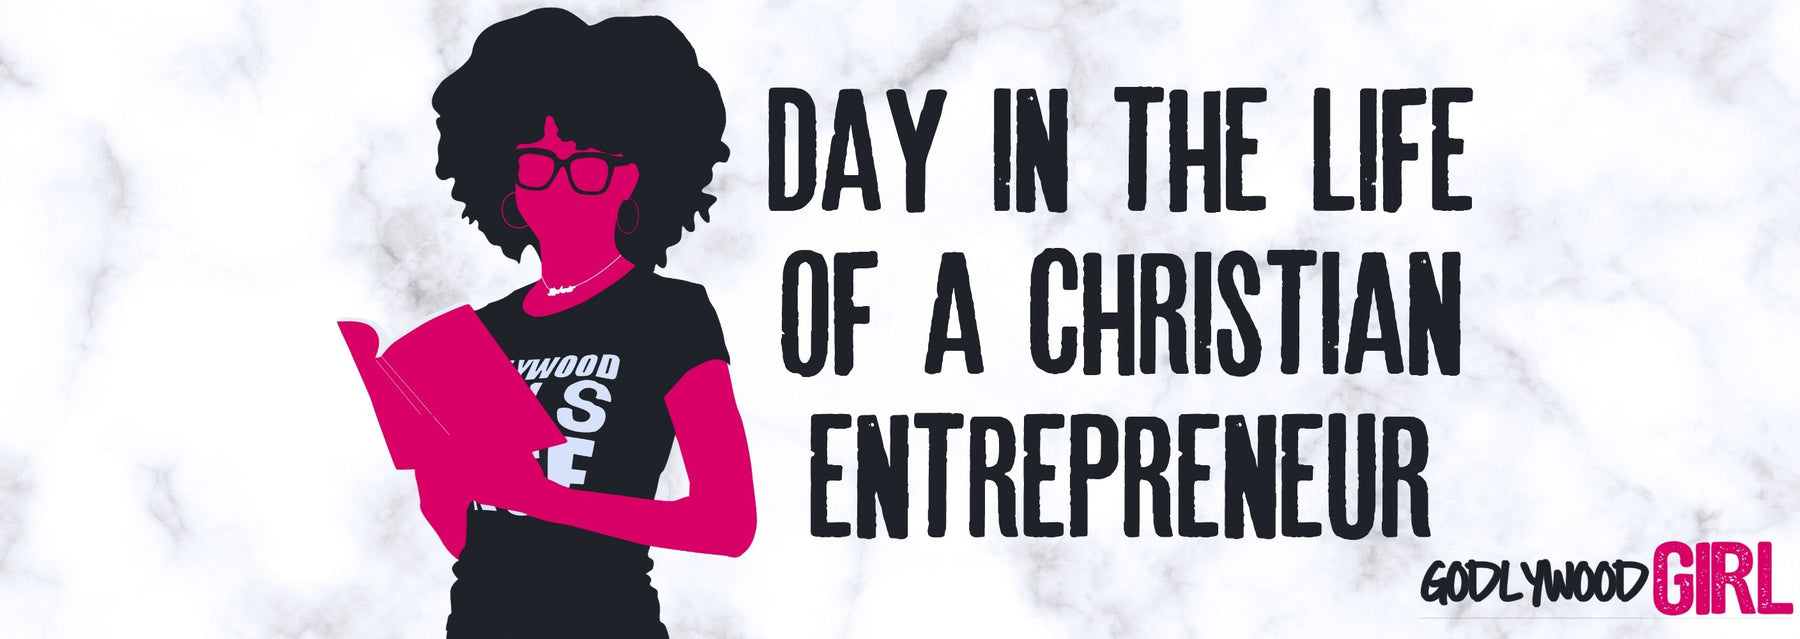 Day In The Life Of A Christian Entrepreneur Ep.19 | 7 DAYS IN THE LIFE OF AN ENTREPRENEUR + A PRODUCT LAUNCH!